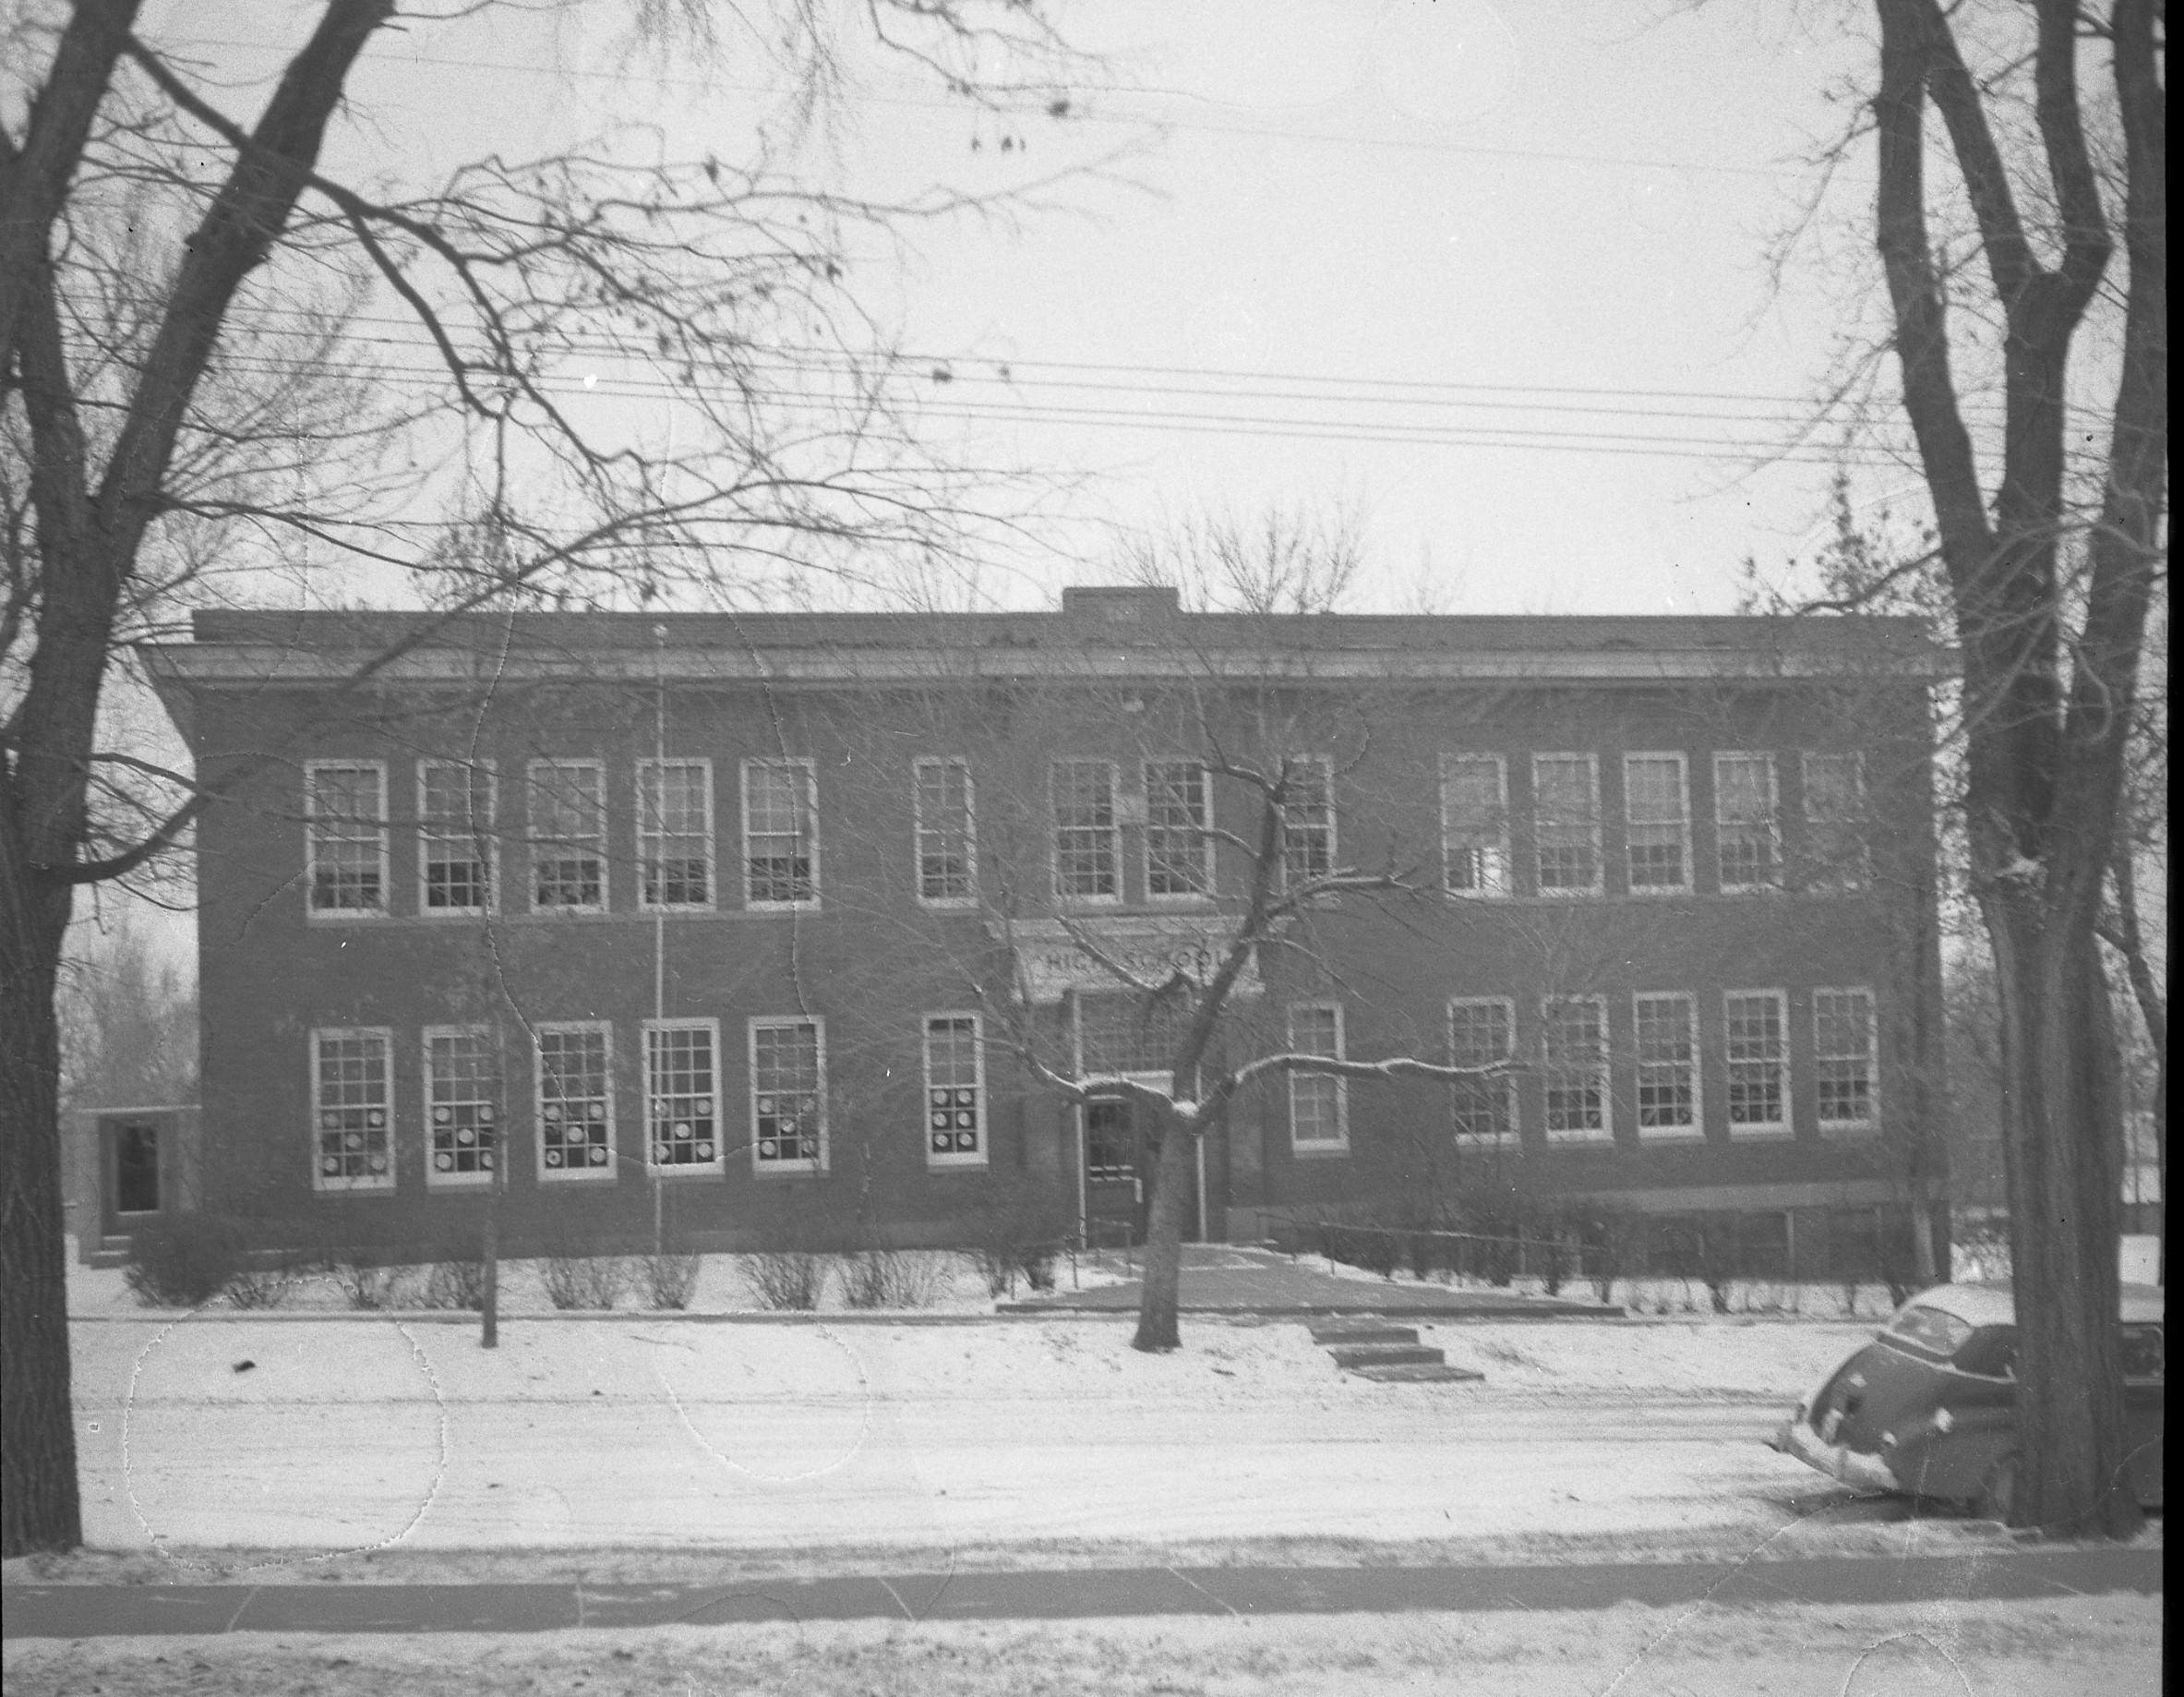 Elmwood_BD_School_Building_1914